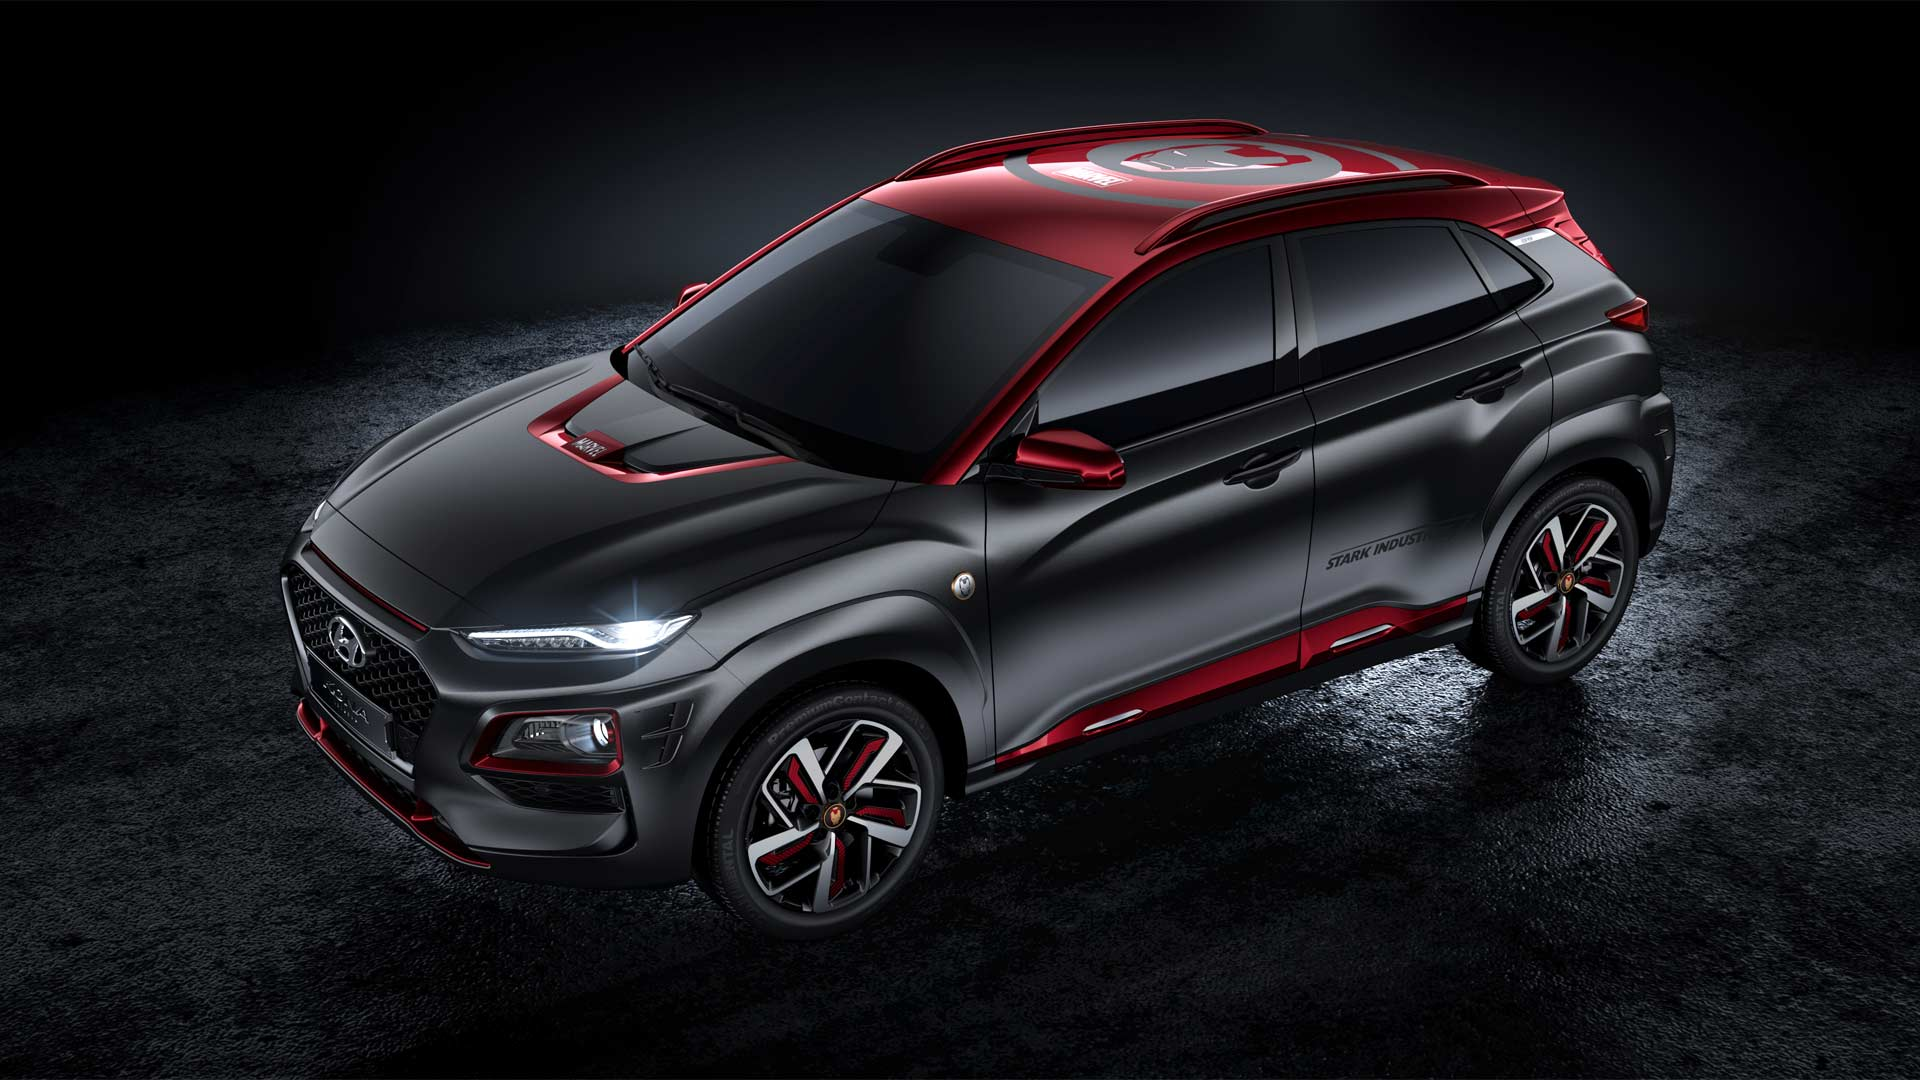 hyundai kona iron man edition production begins in december autodevot. Black Bedroom Furniture Sets. Home Design Ideas